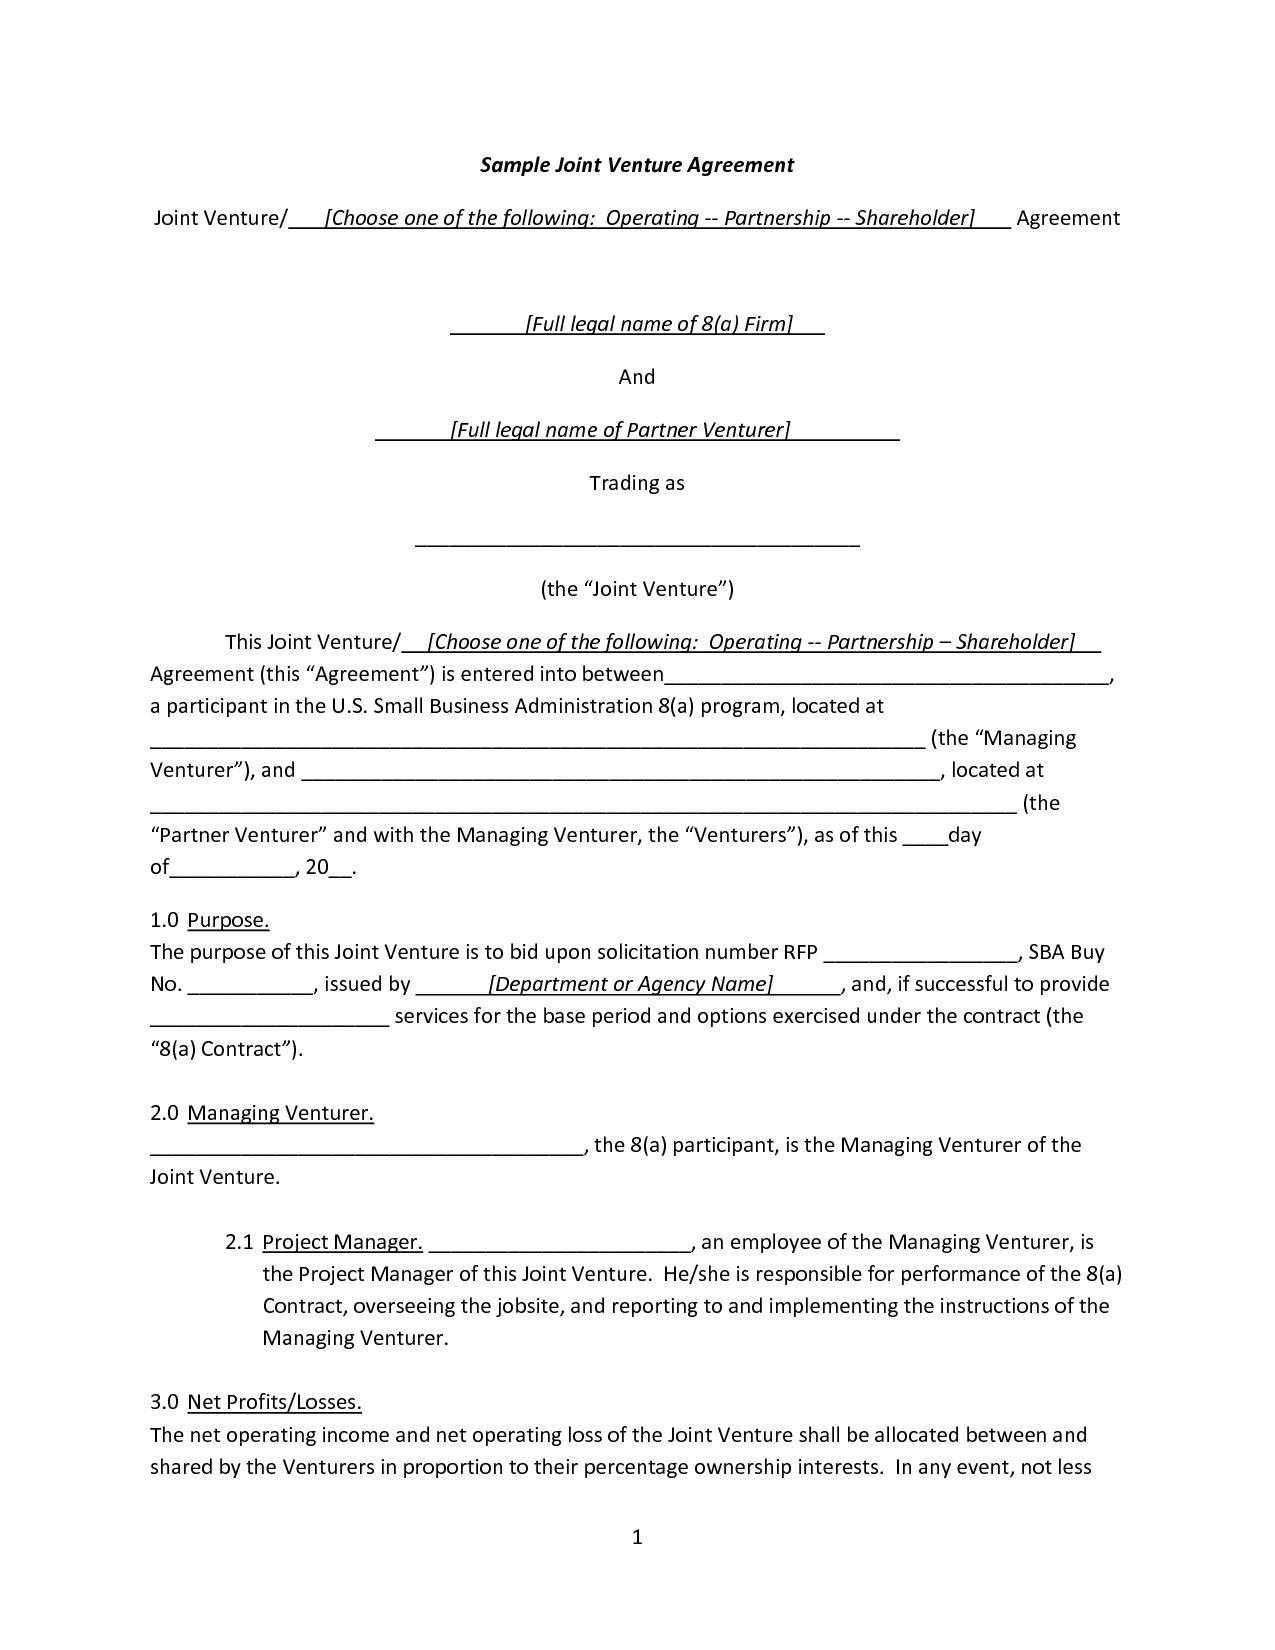 Sample Joint Venture Agreement Resume Template Sample